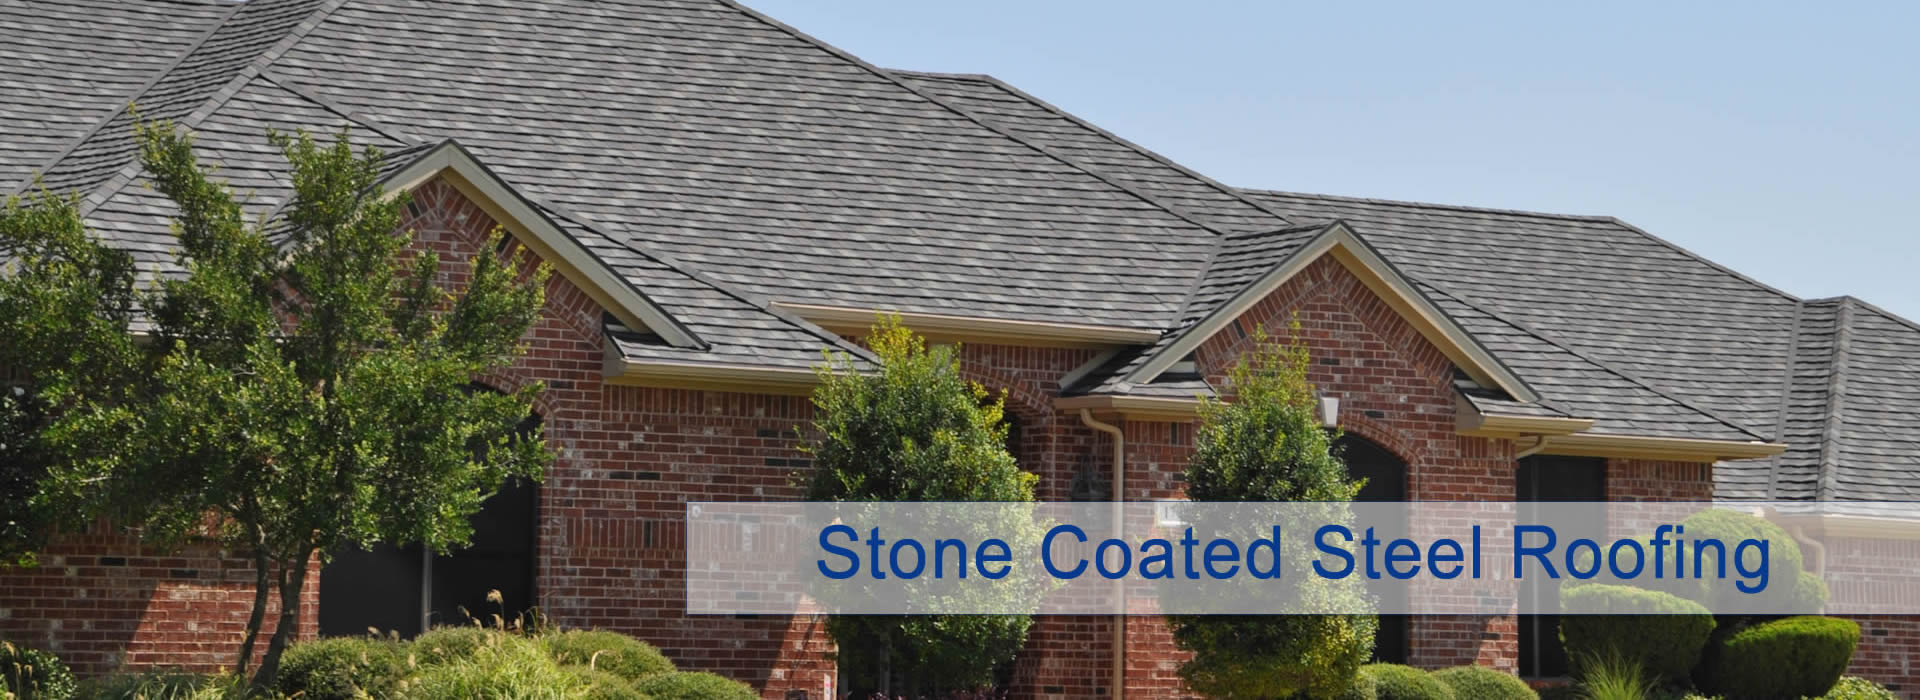 Stone Coated Steel Roofing Systems Dallas